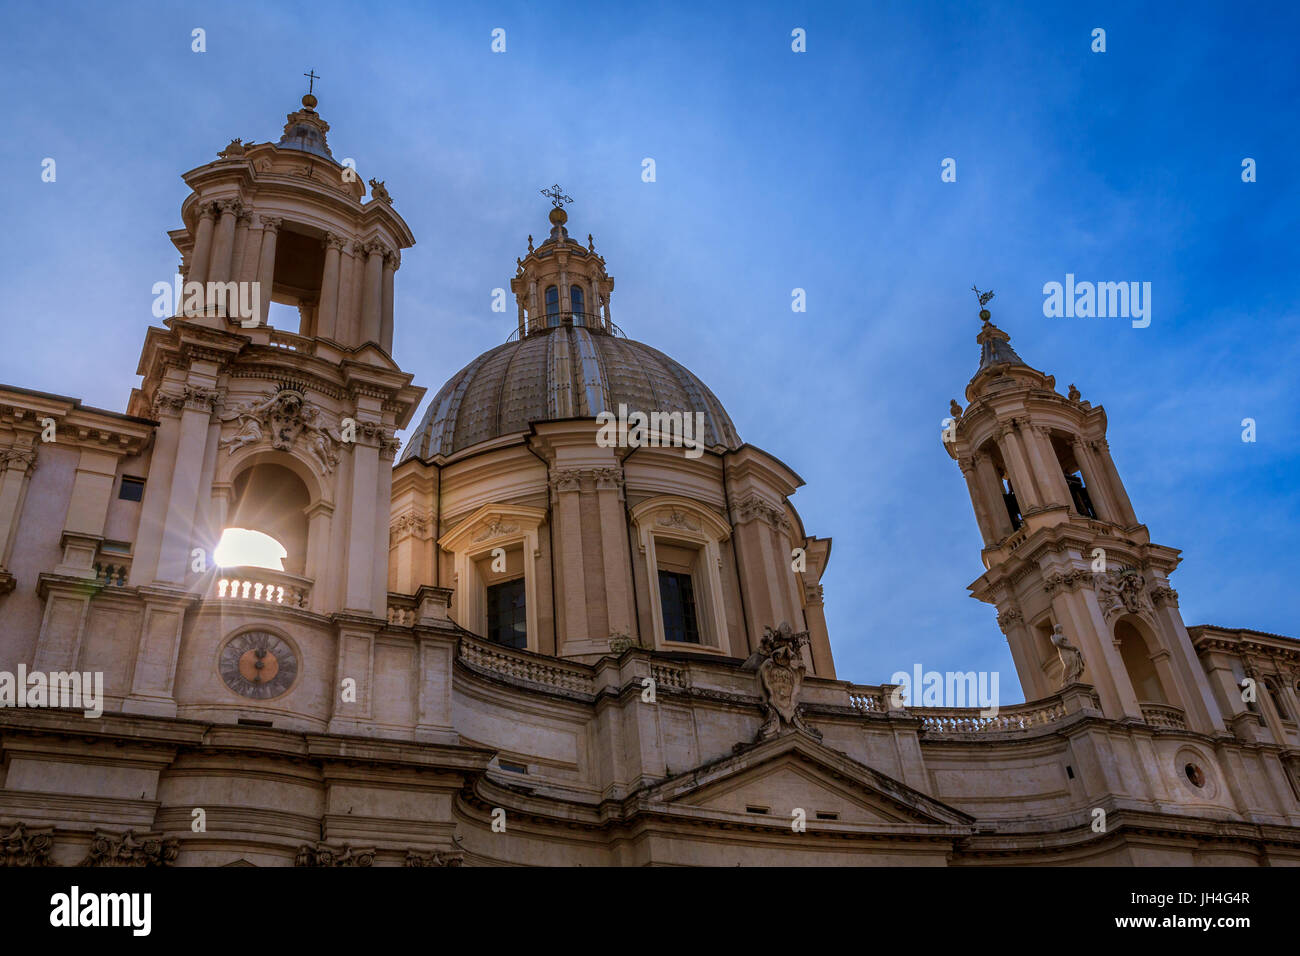 A bright sunburst through the church tower of Sant'Agnese in Agone, Piazza Navona, Rome, Lazio, Italy - Stock Image